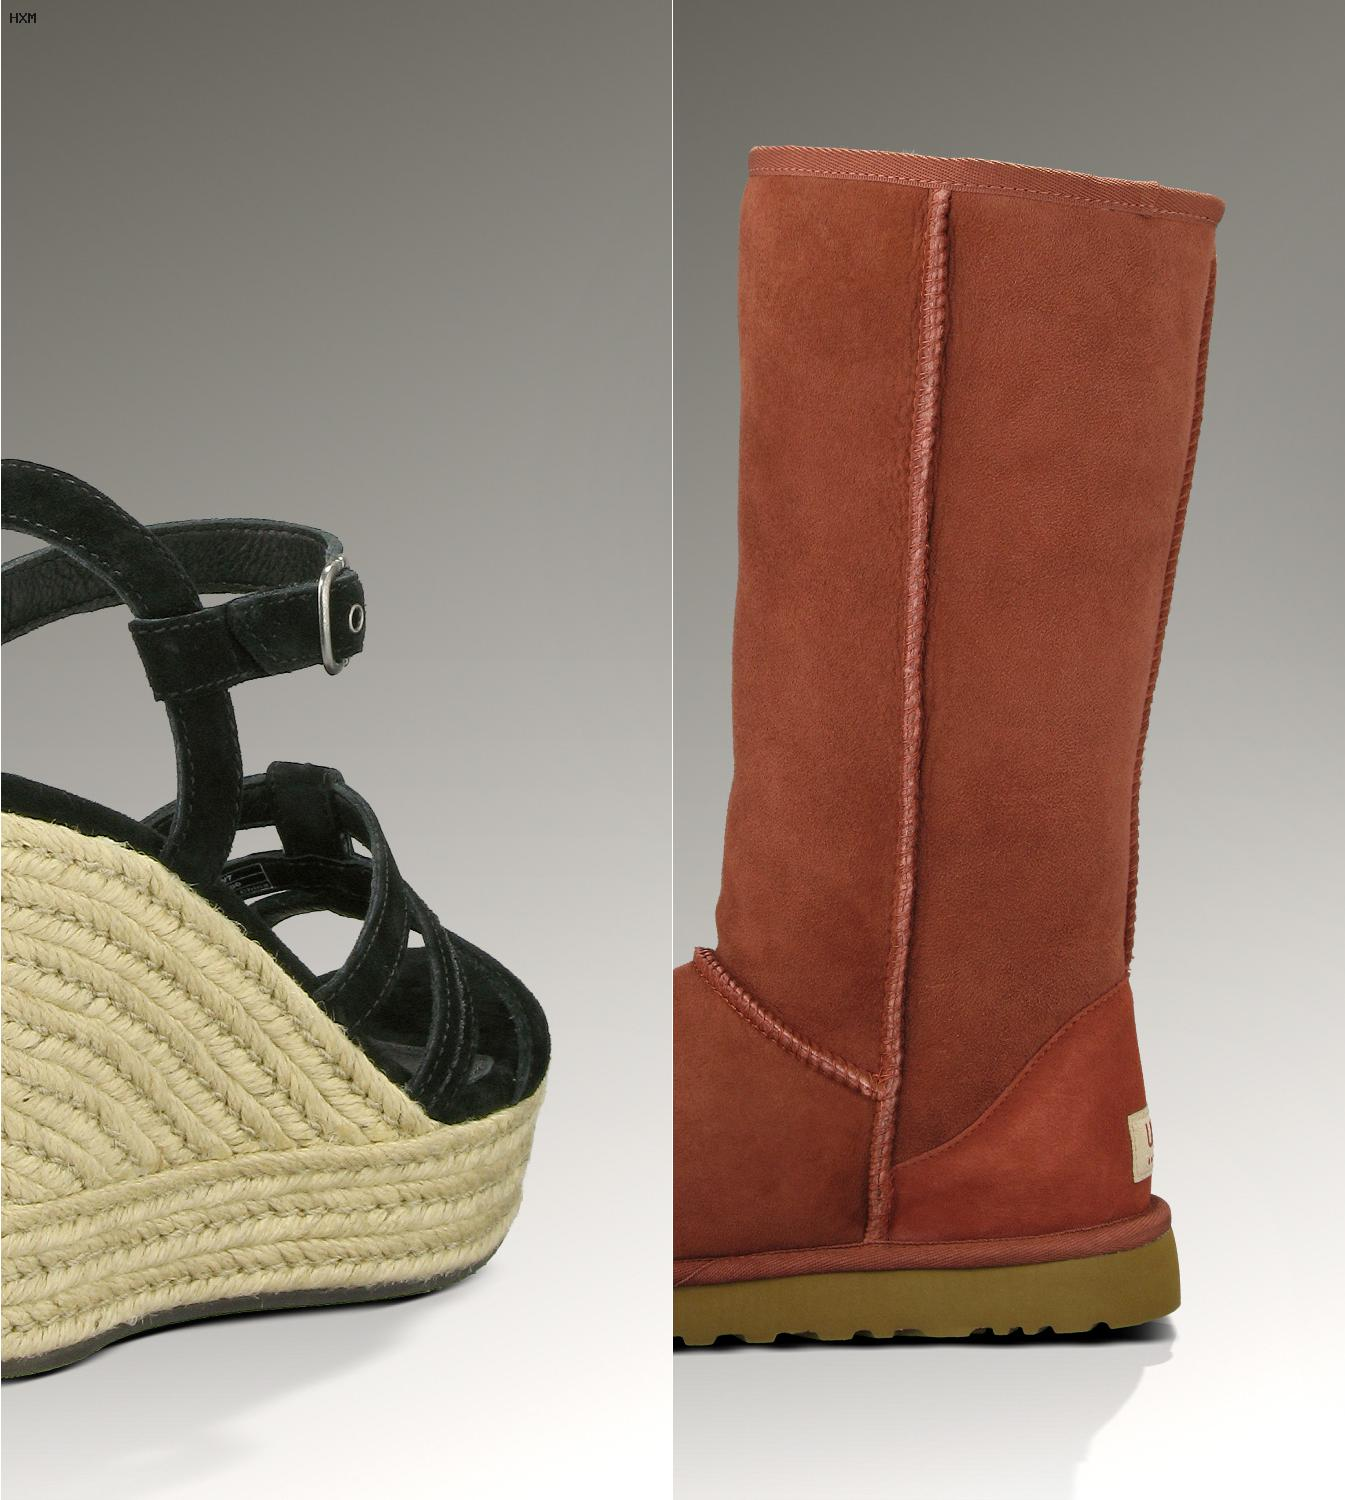 ugg australia boots made in china